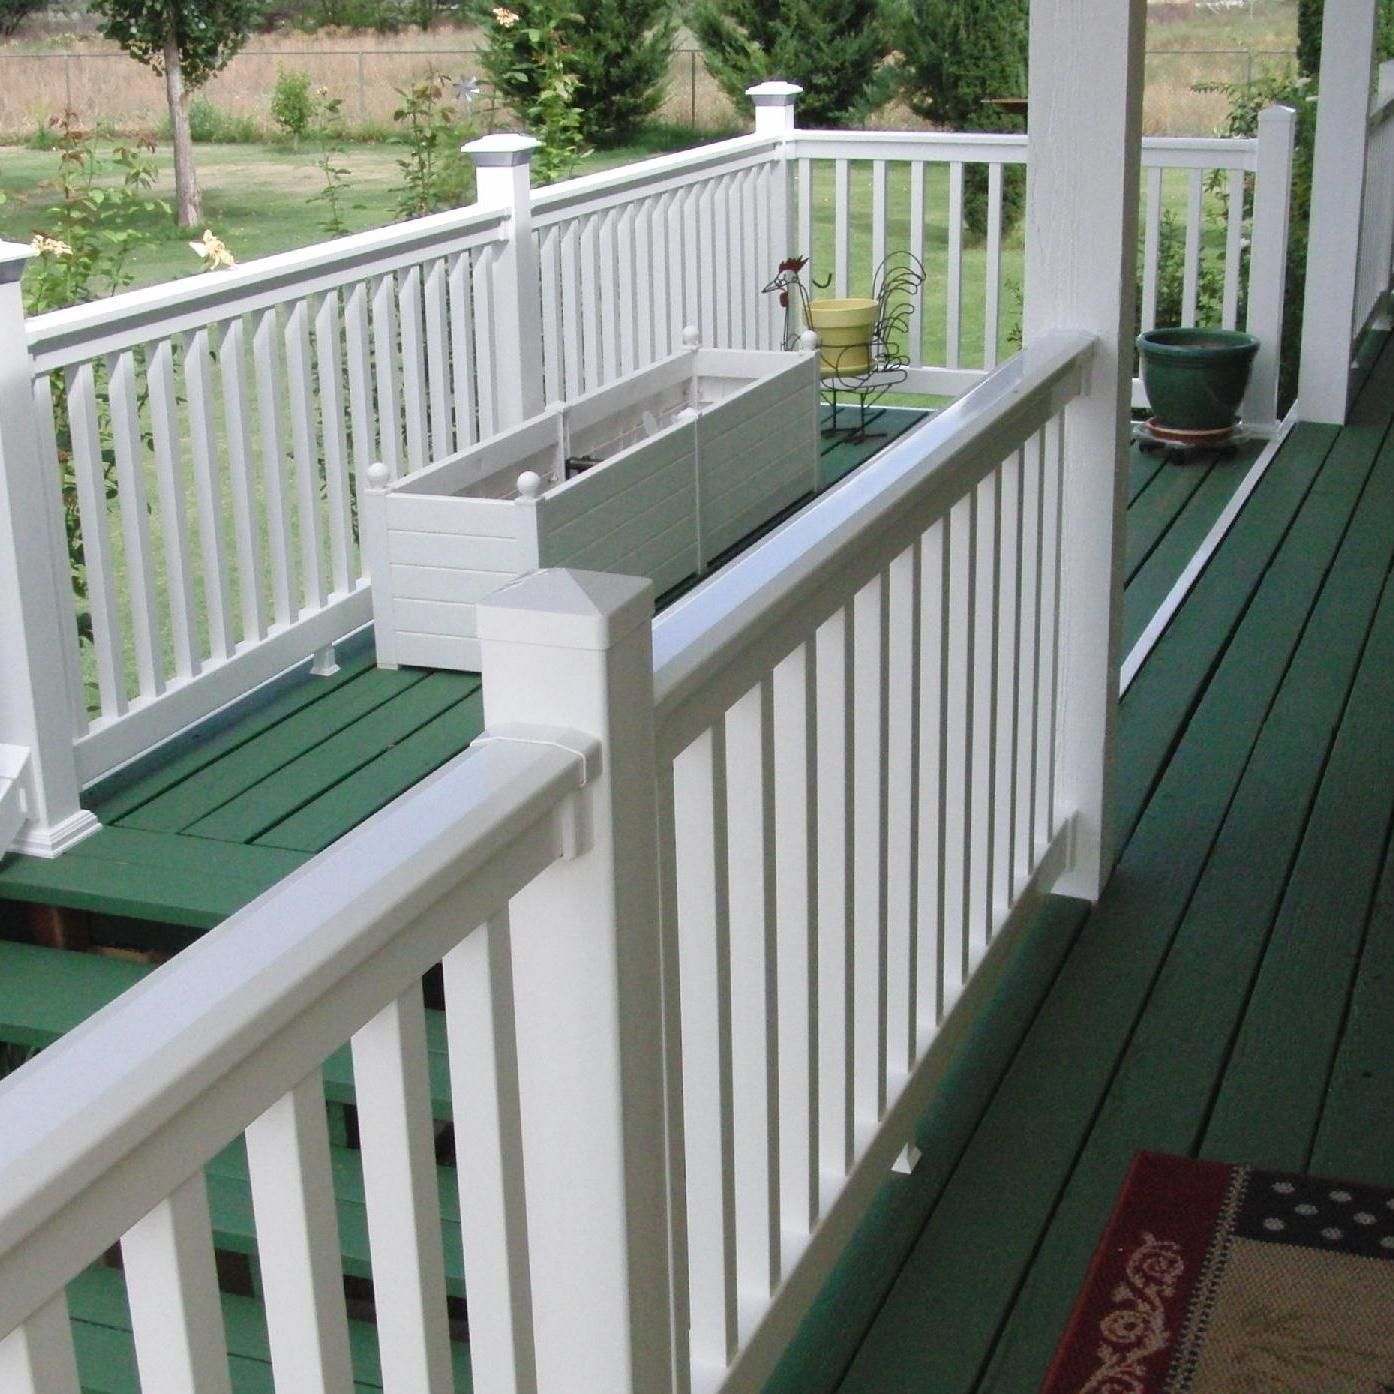 This Vinyl Railing Comes In A Kit With Easy To Follow Installation Instructions For Any Porch Or Patio Needs Vinyl Deck Railing Vinyl Deck Deck Railings